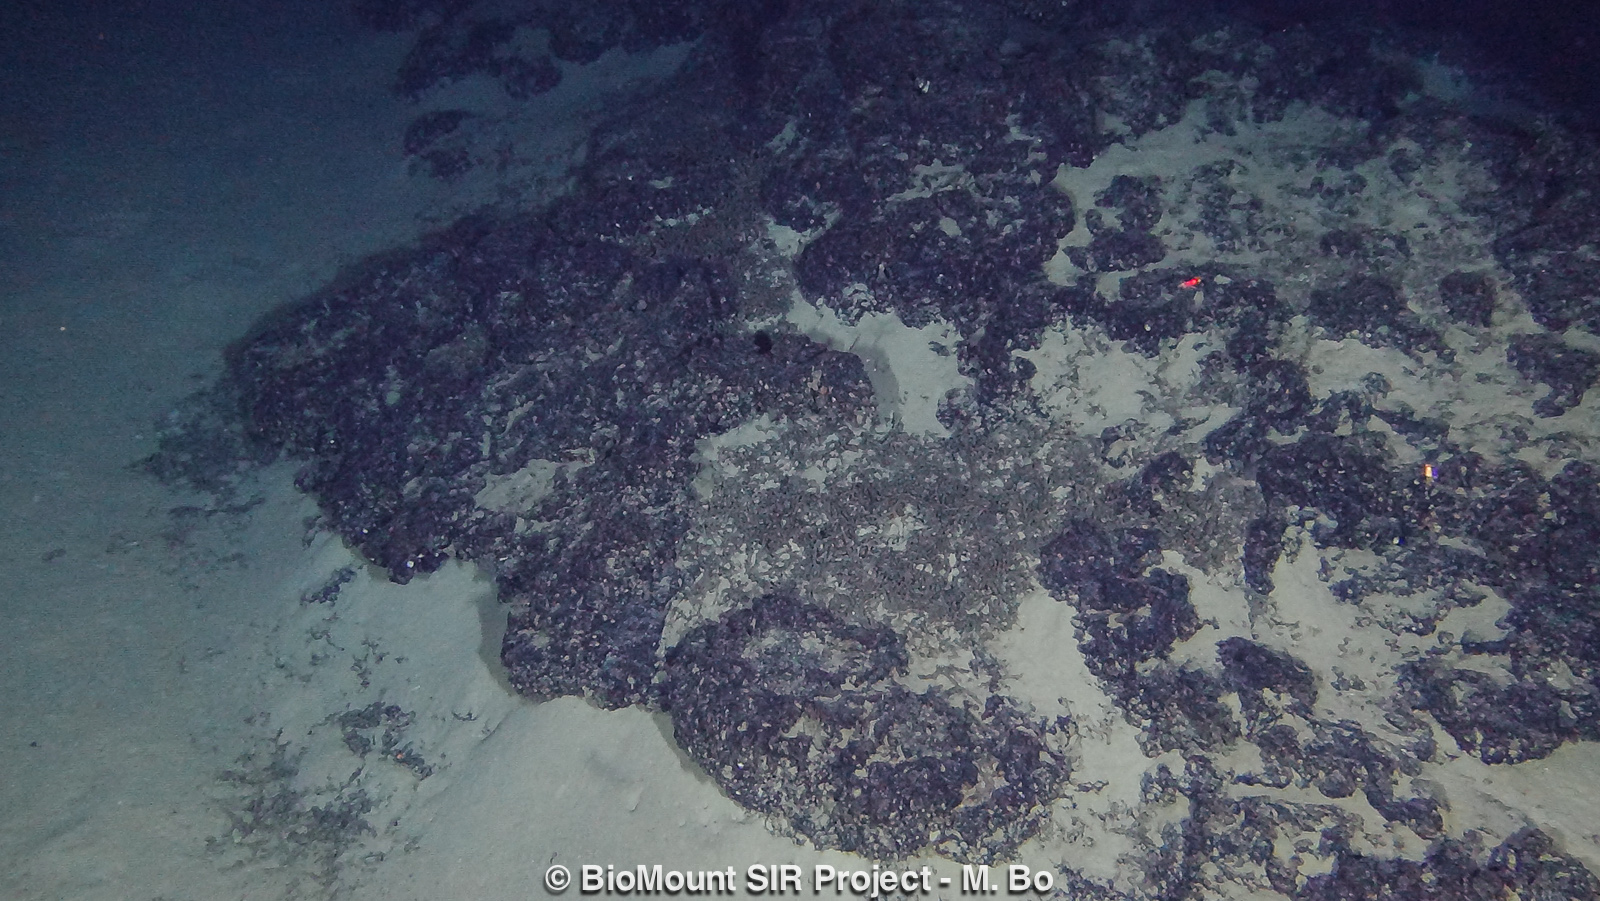 Rocky seafloor covered in Fe-Mn and with a Lophelia pertusa tanatocoenosis.